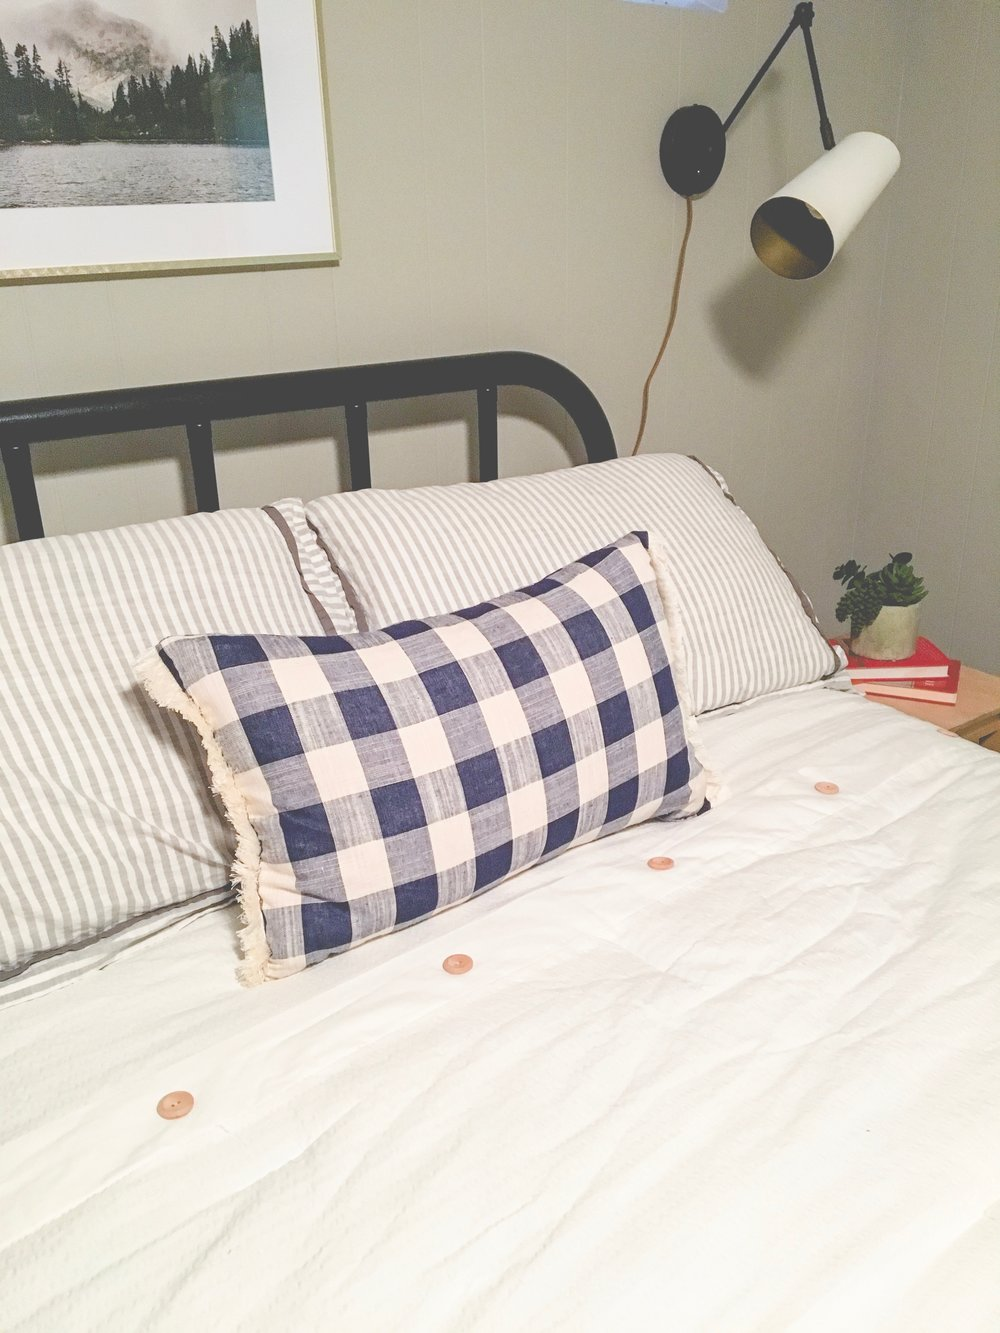 Our boring guest room gets a whole new modern cozy chic cabin look! Learn how to redecorate your guest room so it feels cozy and welcoming. A plaid lumbar pillow is the perfect finishing touch.